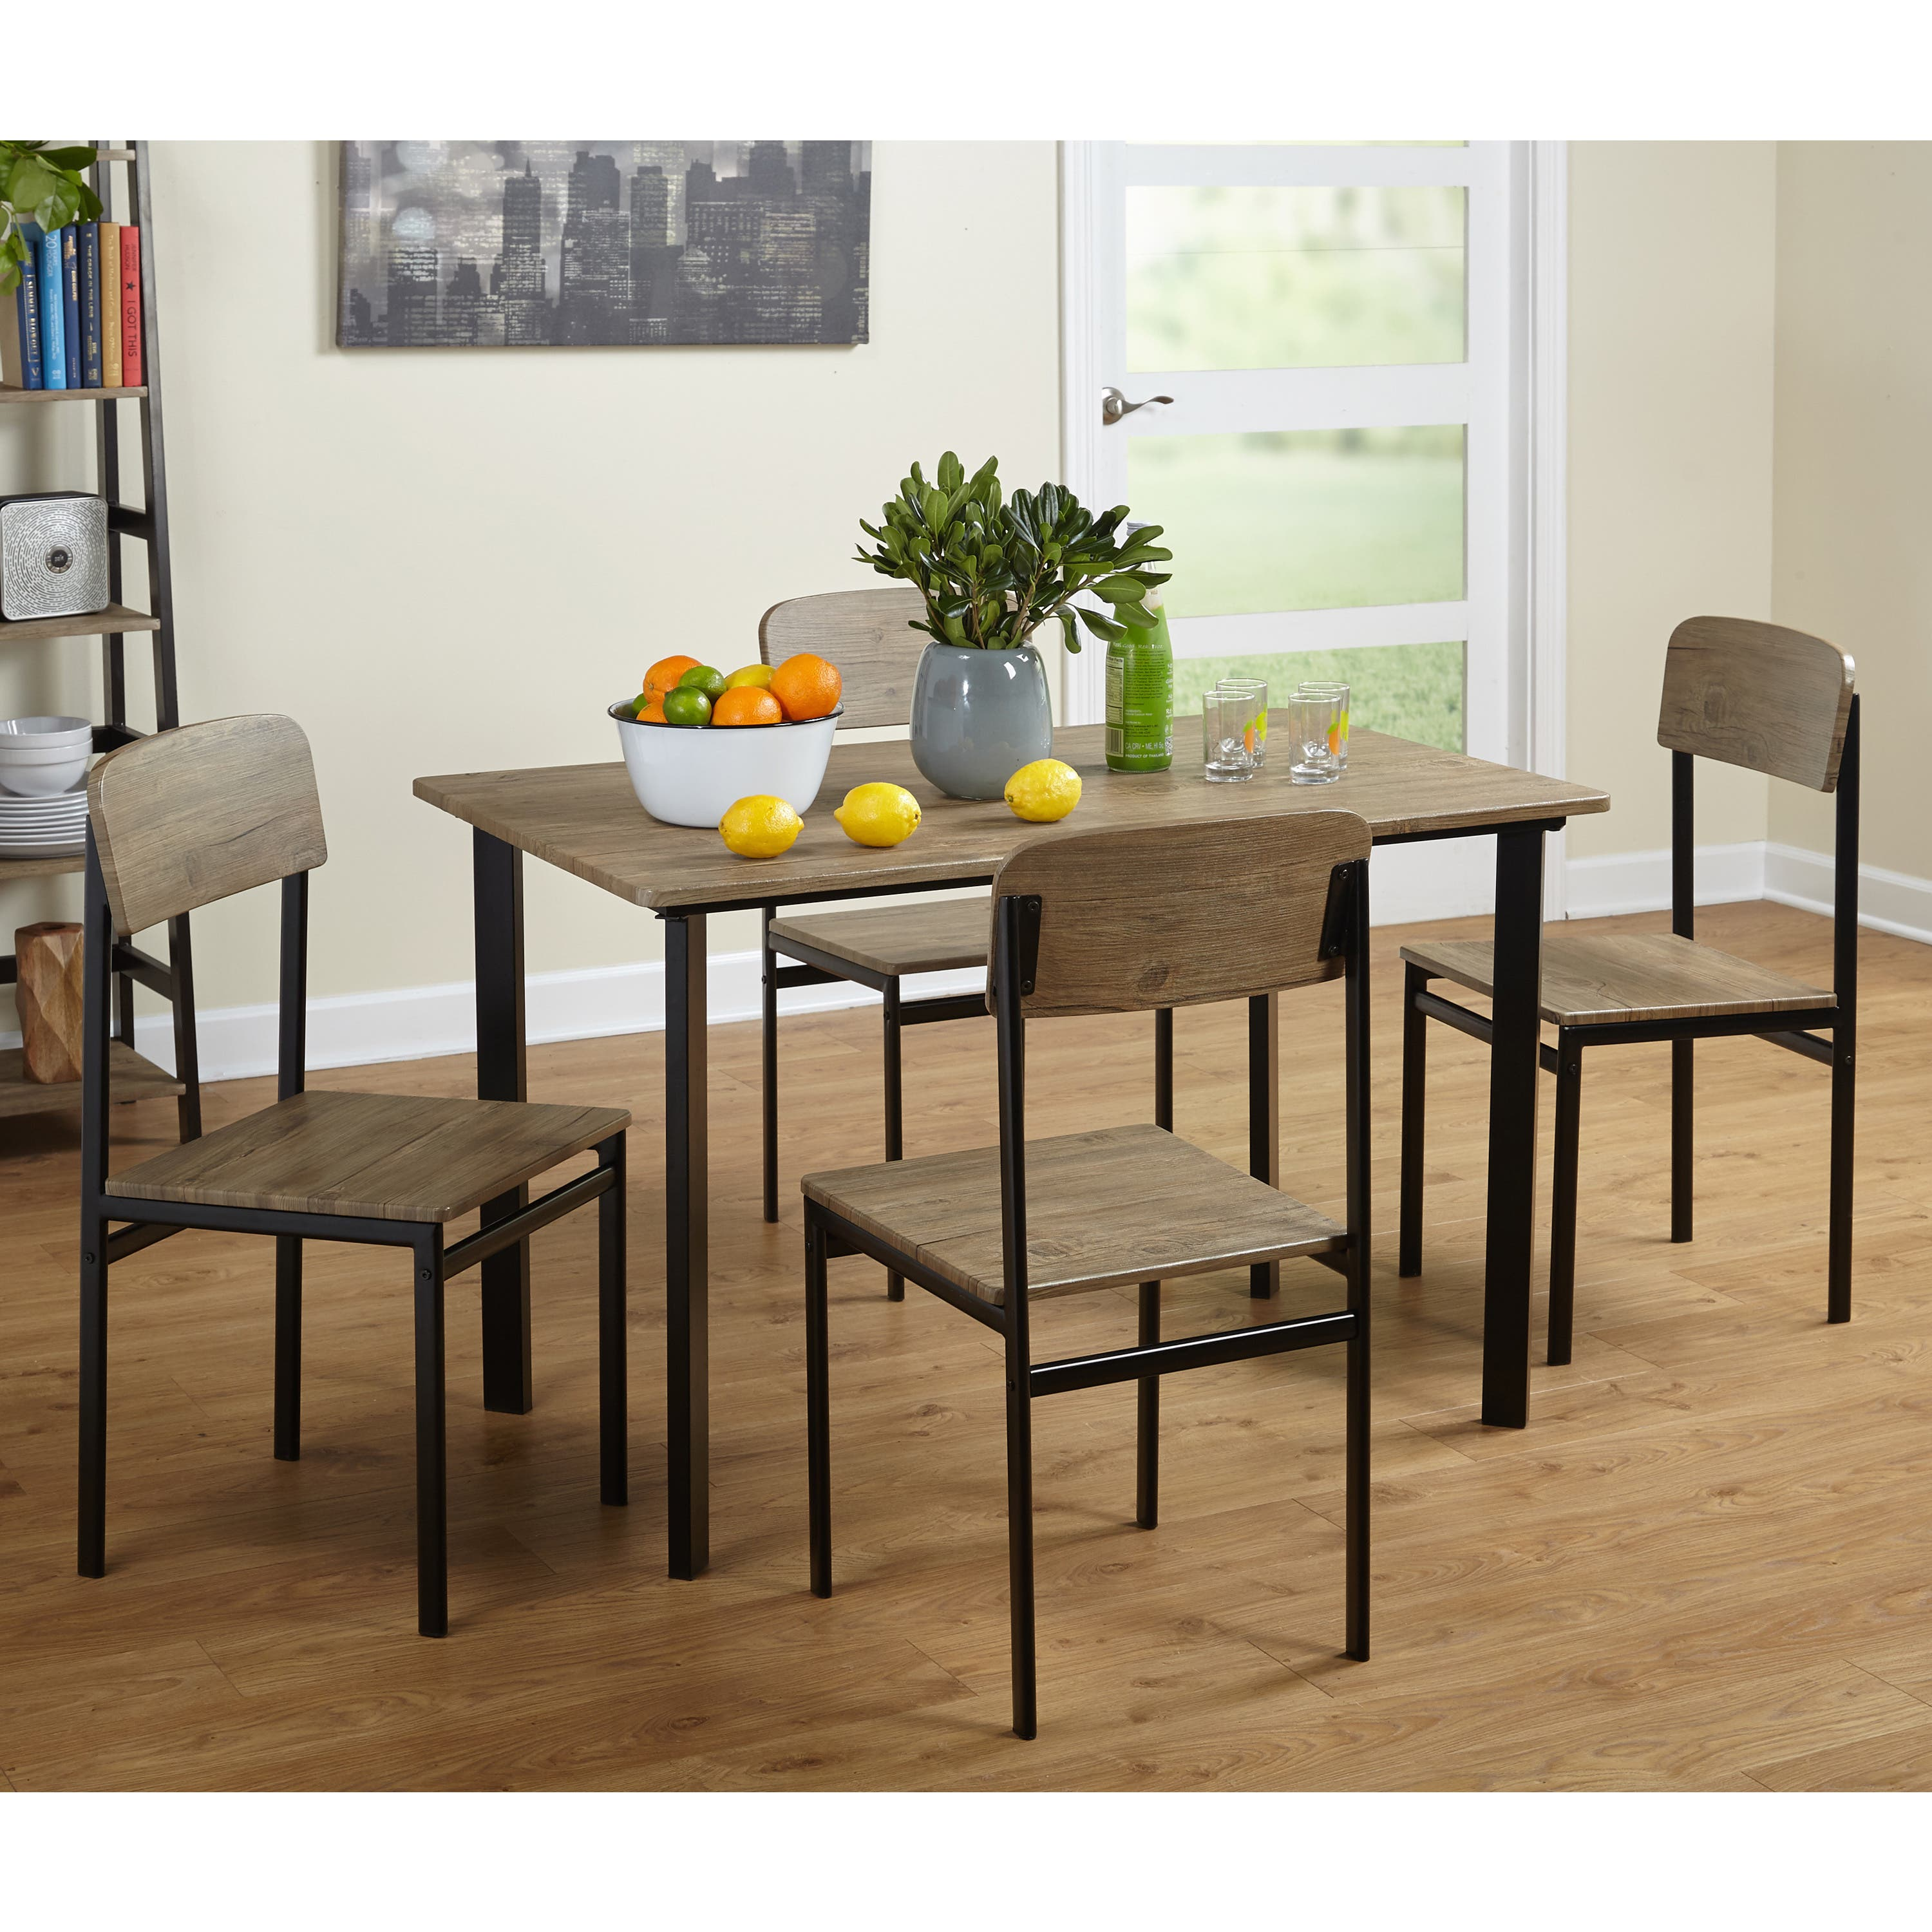 My Best Buy Dining: Buy Kitchen & Dining Room Sets Online At Overstock.com